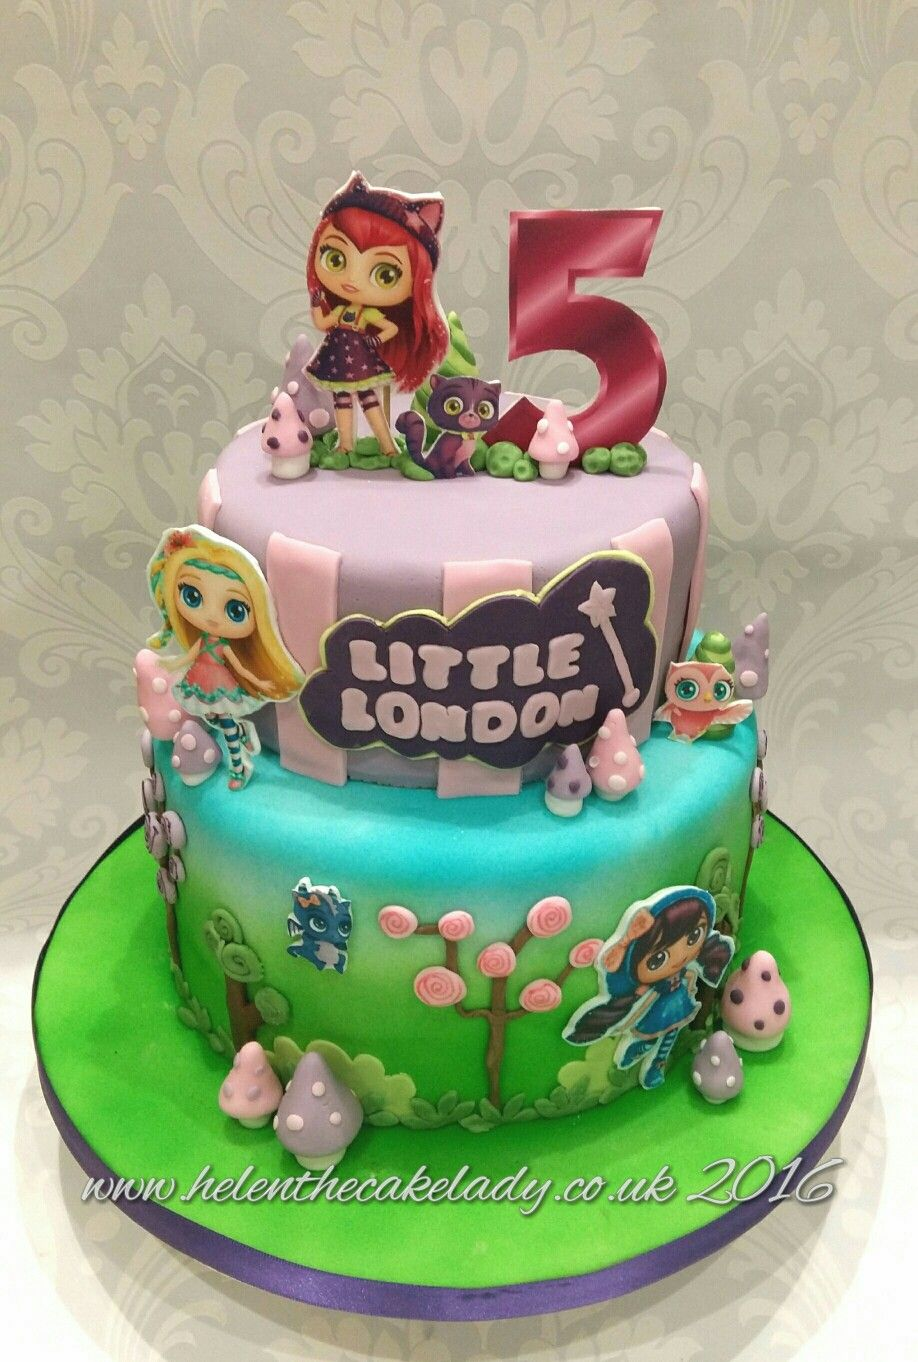 Little Charmers 5th birthday cake. Inspired from another cake design ...